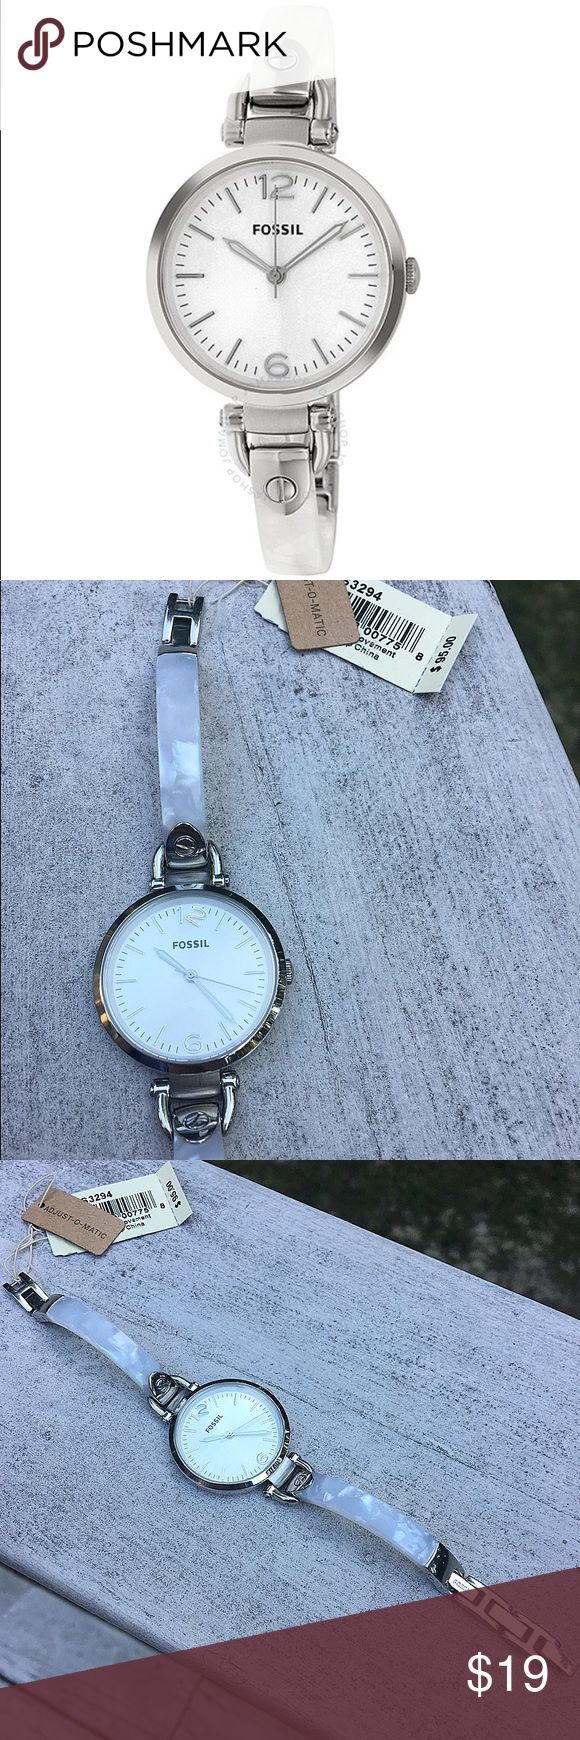 """Women's White Fossil Watch NWD Women's white acrylic and silver steel Fossil watch with removable chain link band. Watch has never been warn and is in excellent condition! Tags still attached! One of the """"12"""" markers are loose and floating in face. This can be repaired by Fossil if sent to company. Needs new battery! Authentic. No trades! Fossil Accessories Watches"""